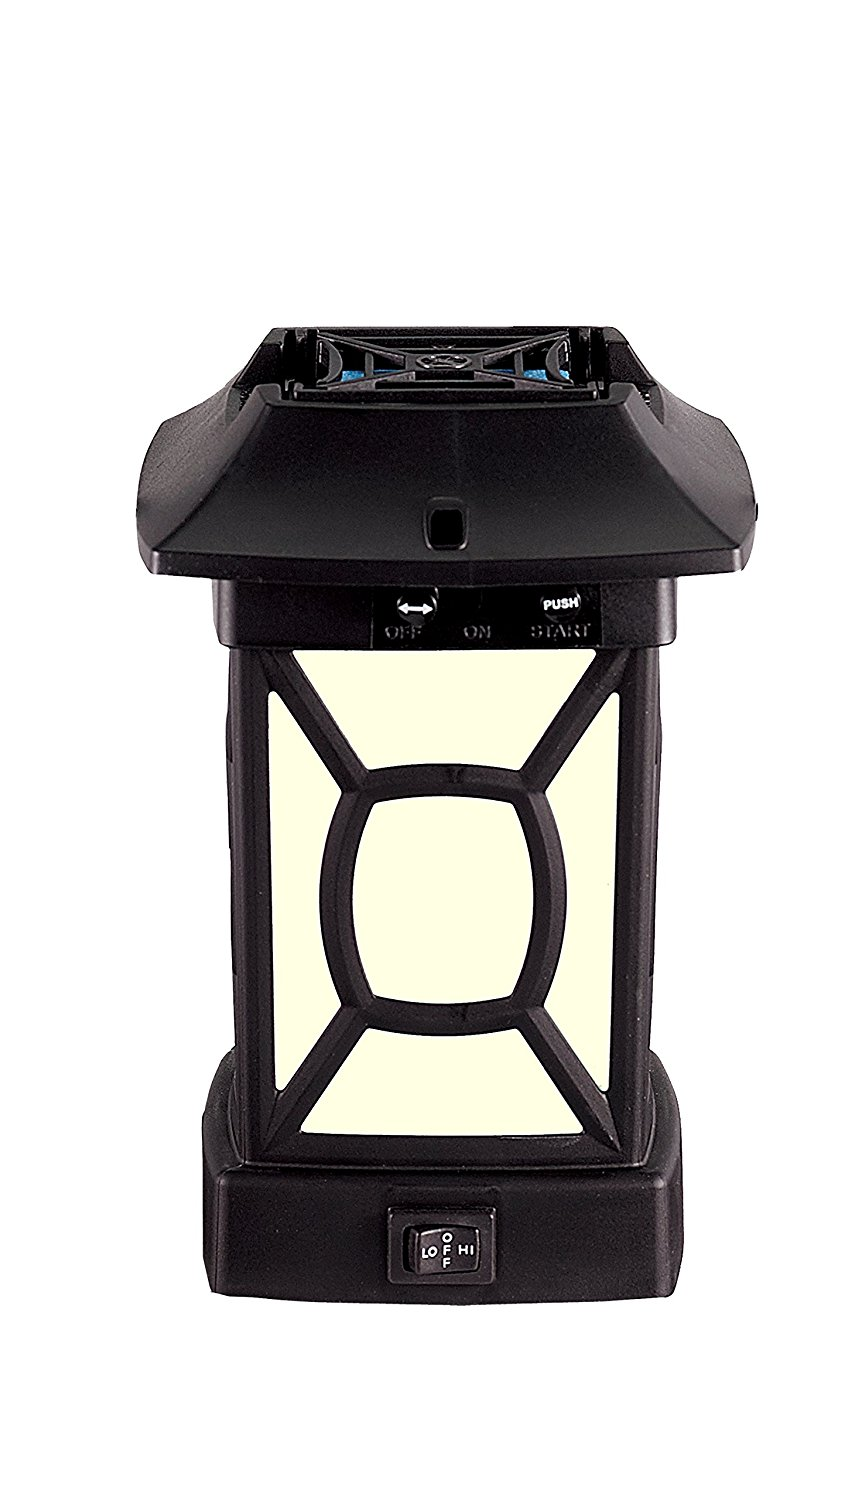 Mosquito Repellent Pest Control Outdoor Lantern Black, USA, Brand Thermacell by